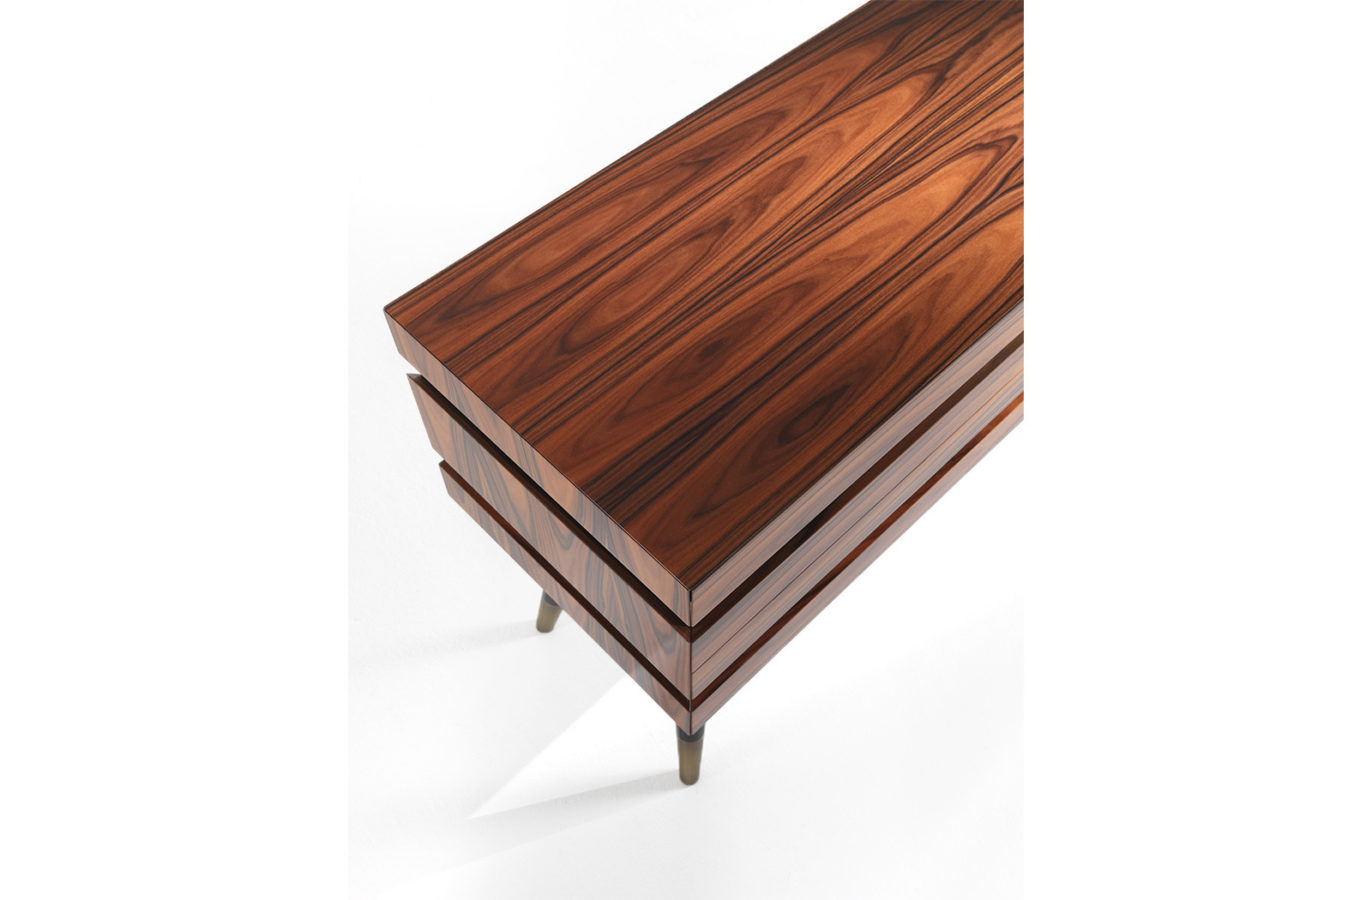 Sean Chest Of Drawers